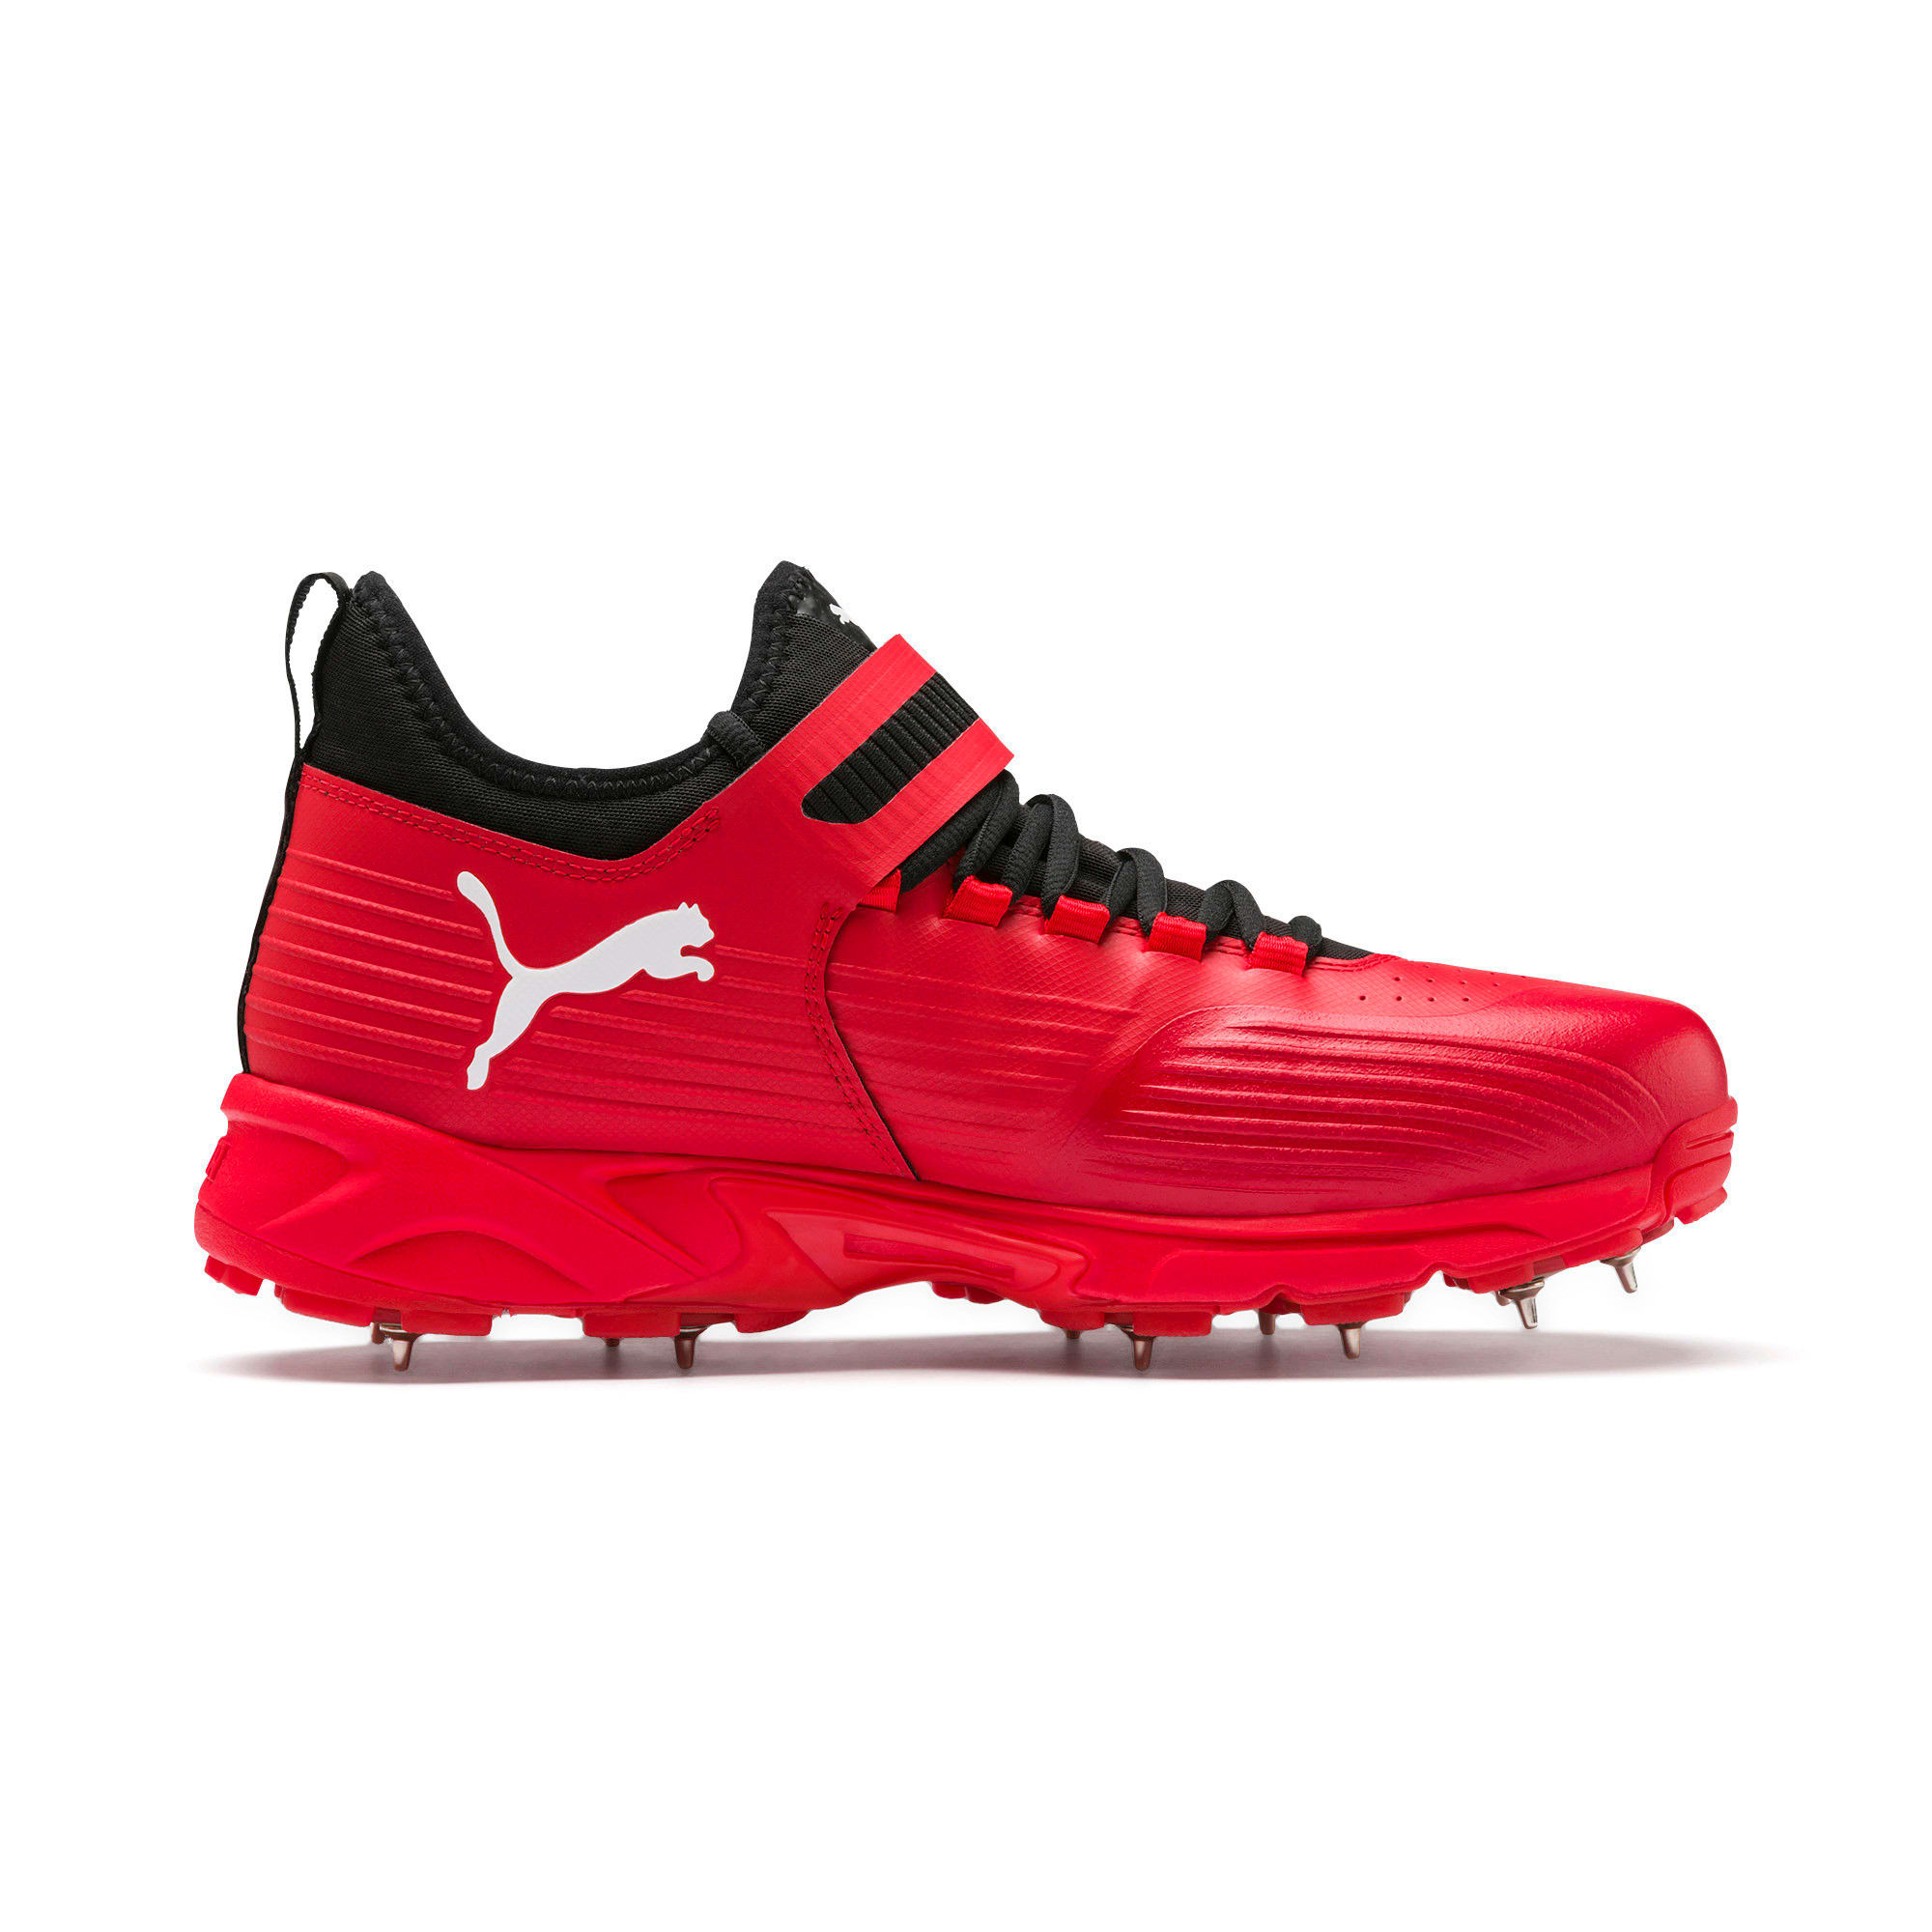 Thumbnail 5 of PUMA 19.1 Bowling Men's Cricket Shoes, High Risk Red-Black-White, medium-IND